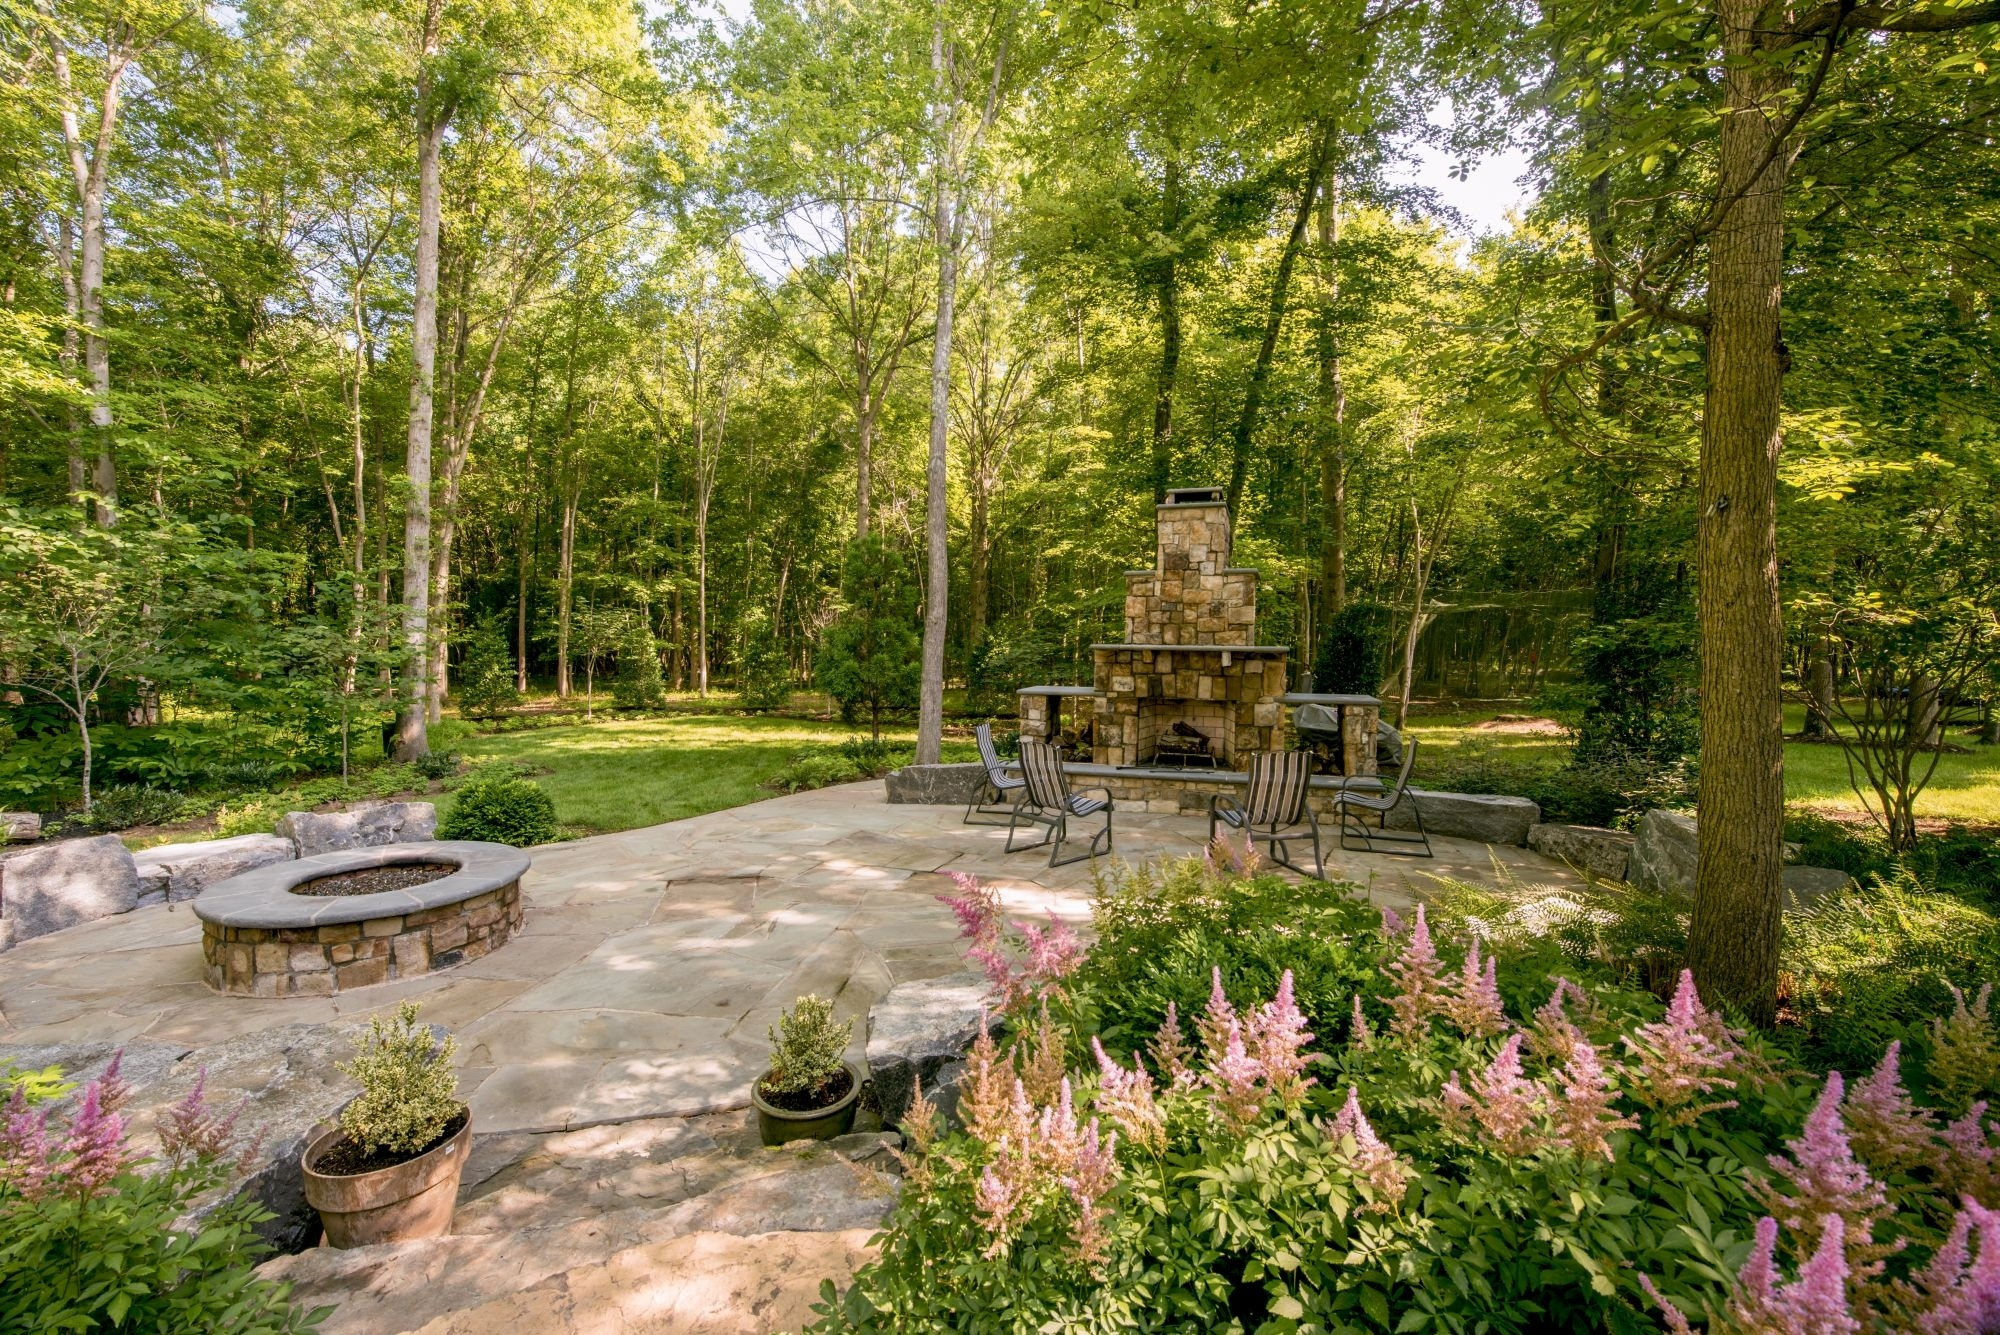 Landscaping services for your Ashburn, Aldie or Leesburg, VA home